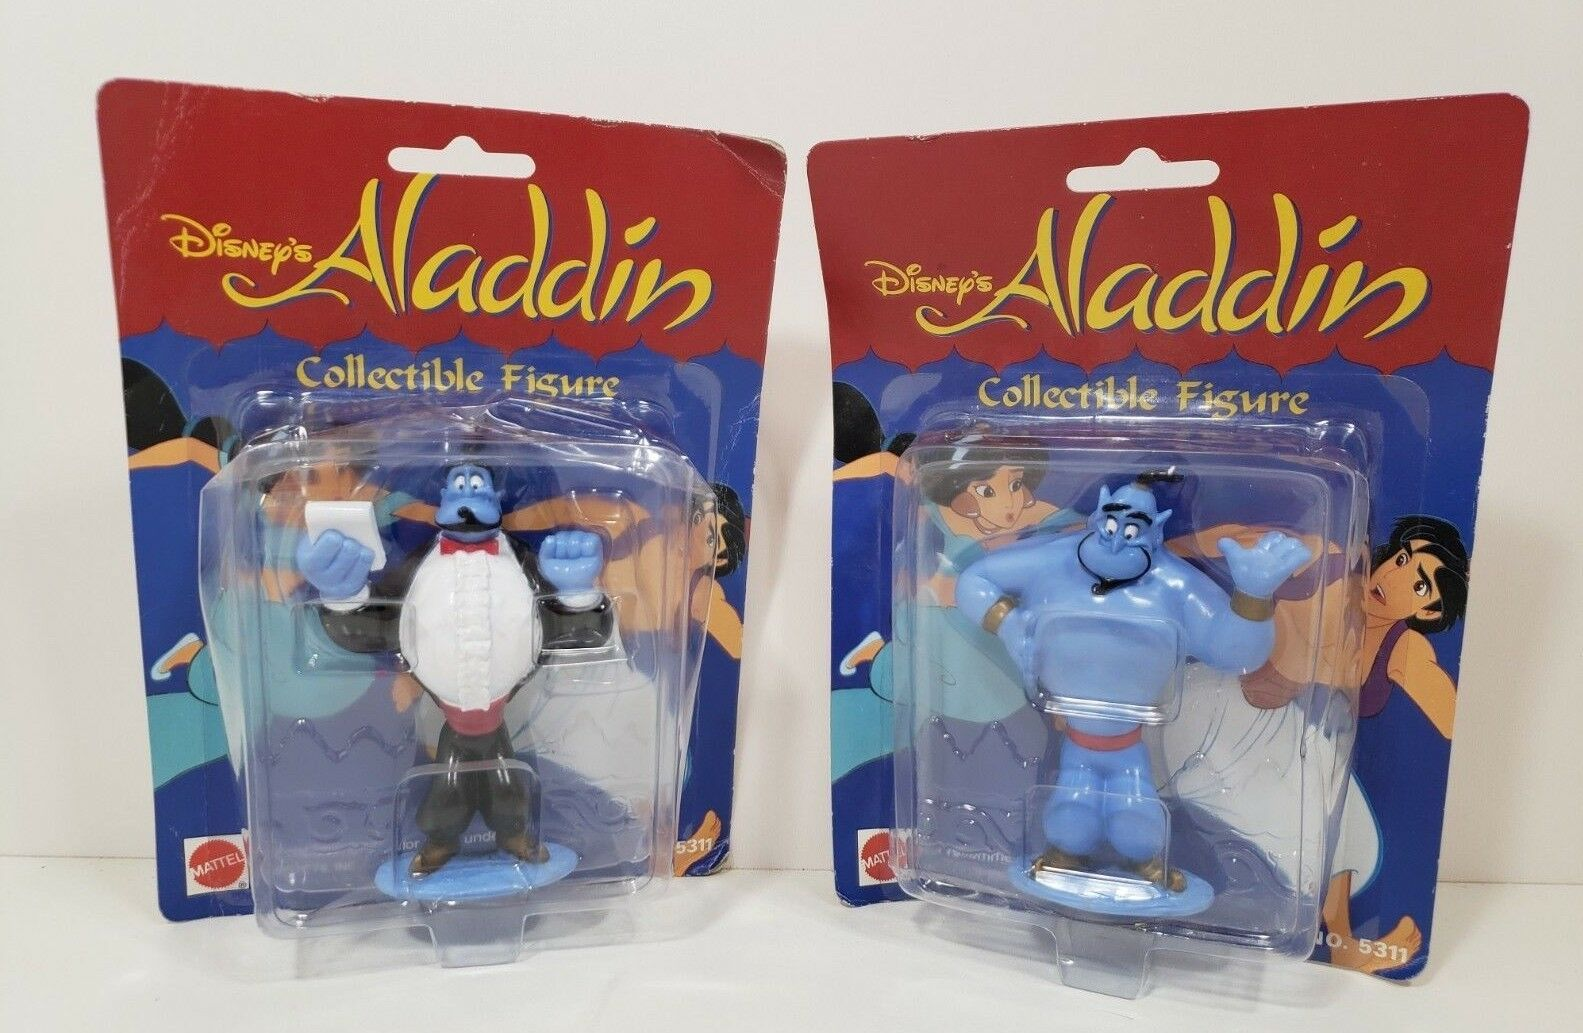 Set of 2 Mattel Disney's Alladdin Collectible figure - Genie